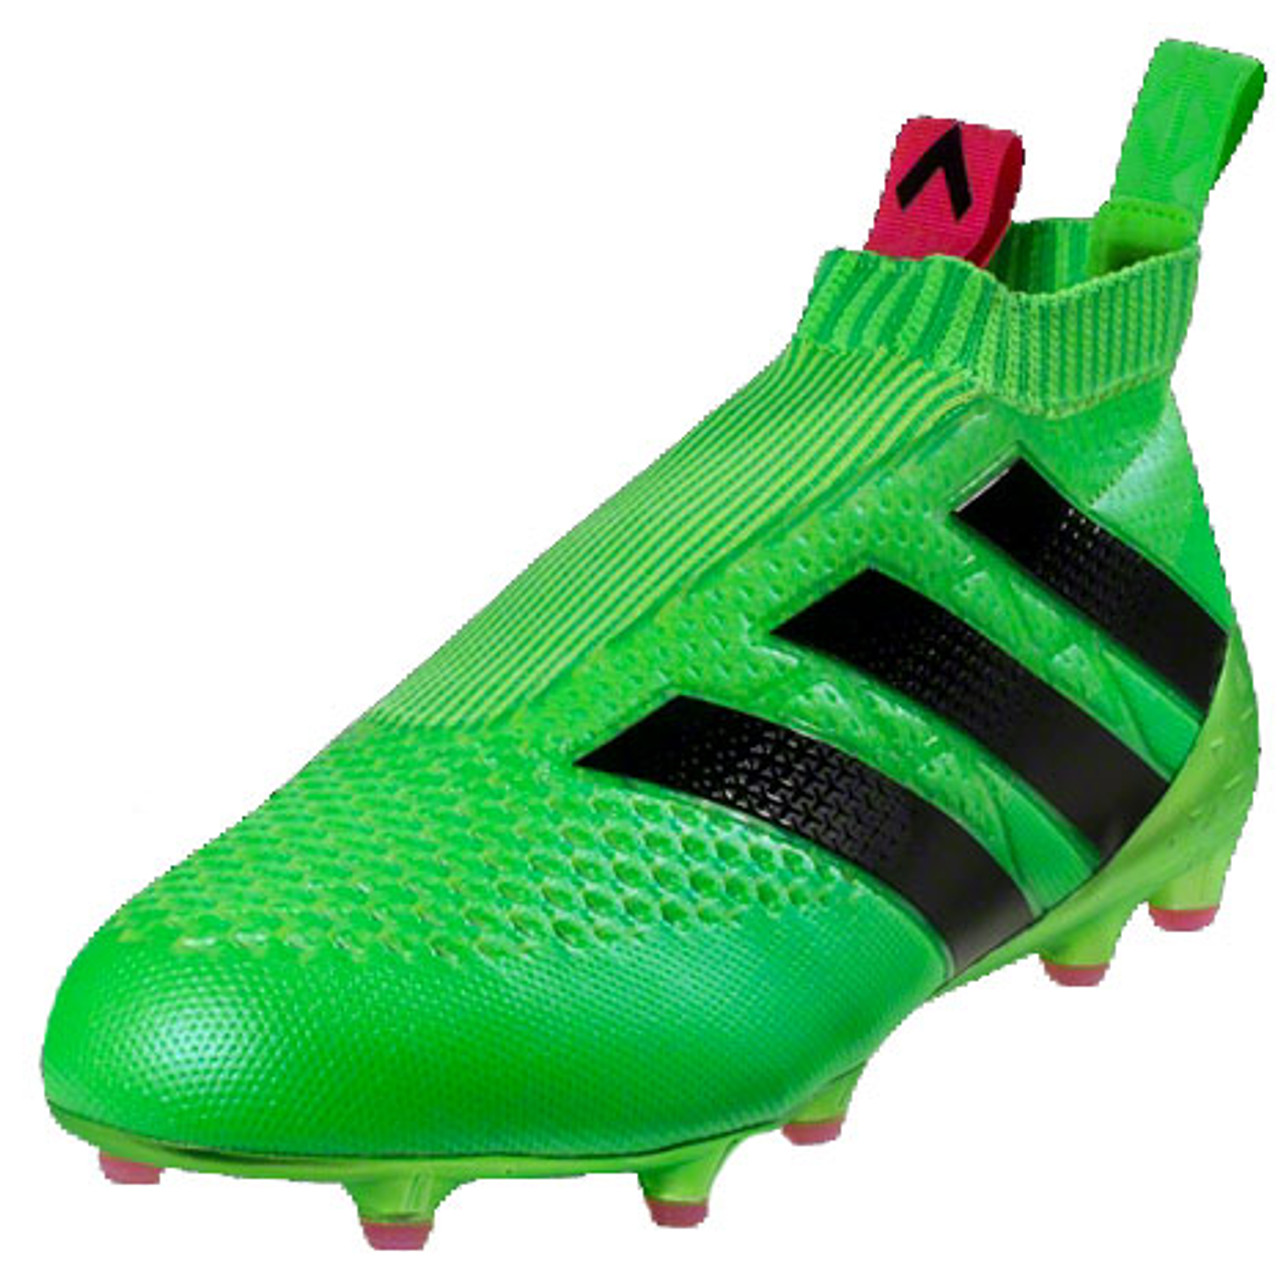 pretty nice 069a7 c8479 ADIDAS ACE 17+ PURECONTROL solar green/black